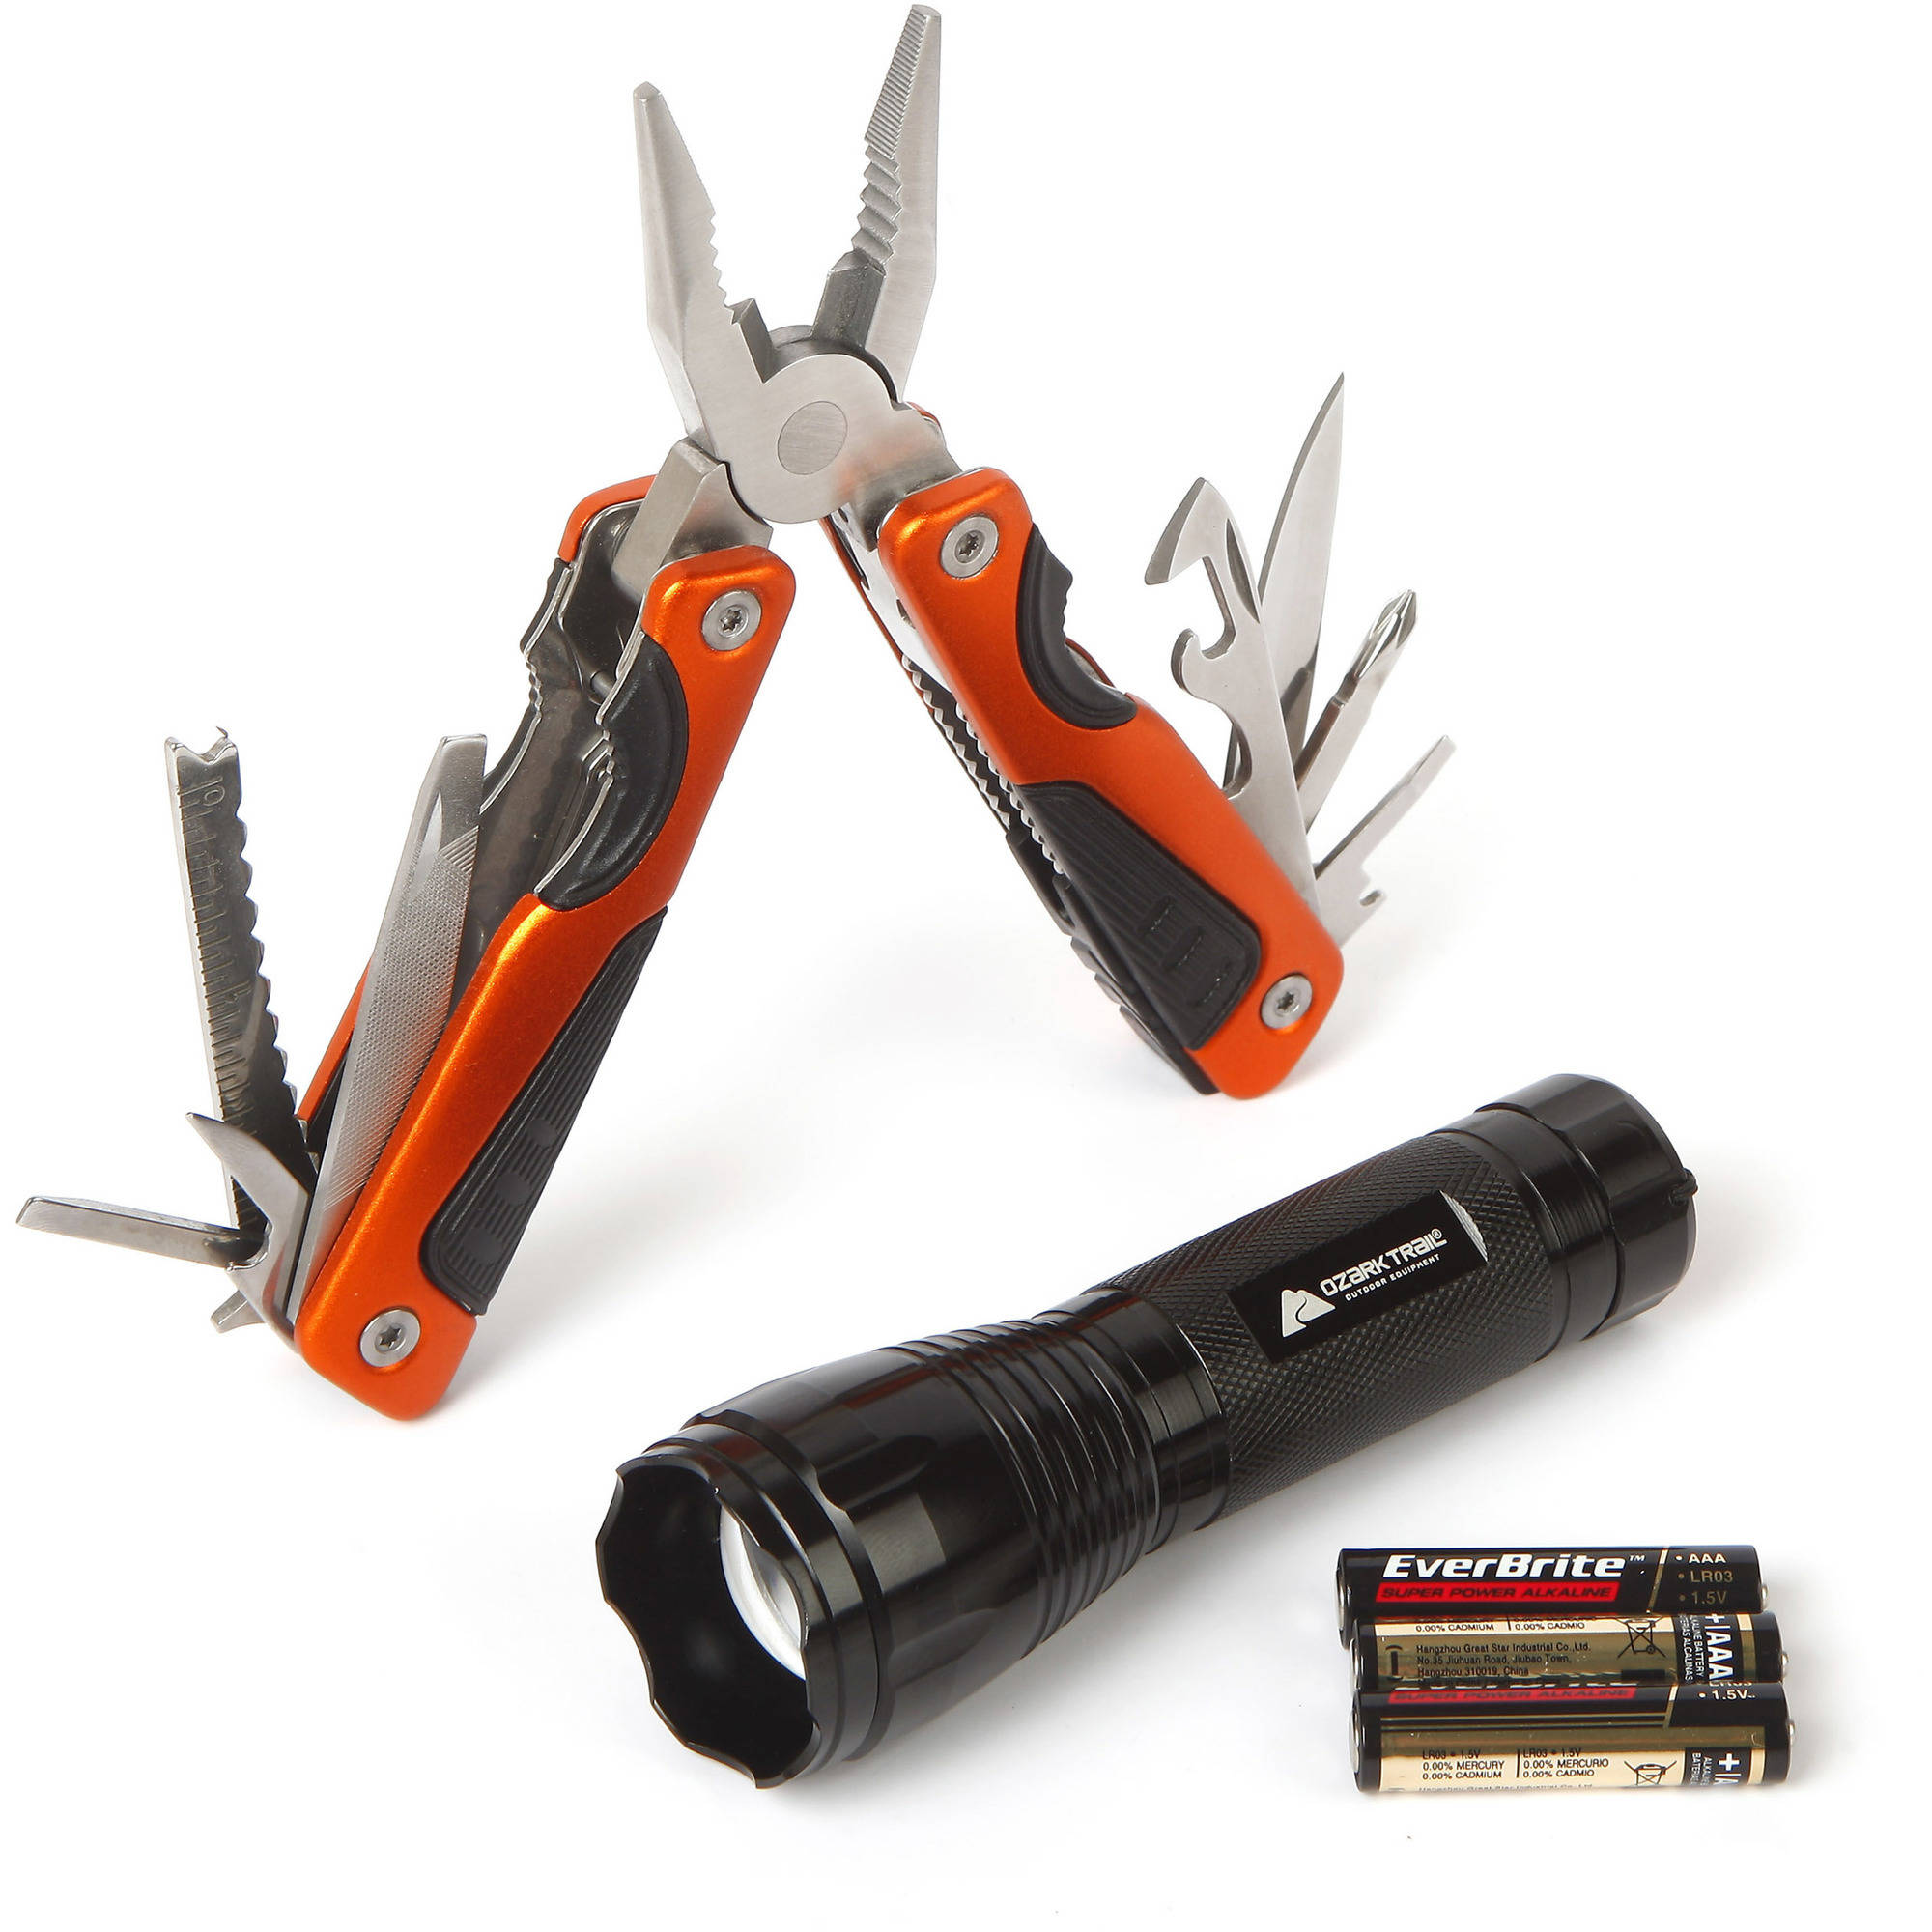 Ozark Trail 2-Piece LED Zoom Flashlight and Multi-Function Tool Combo, Black